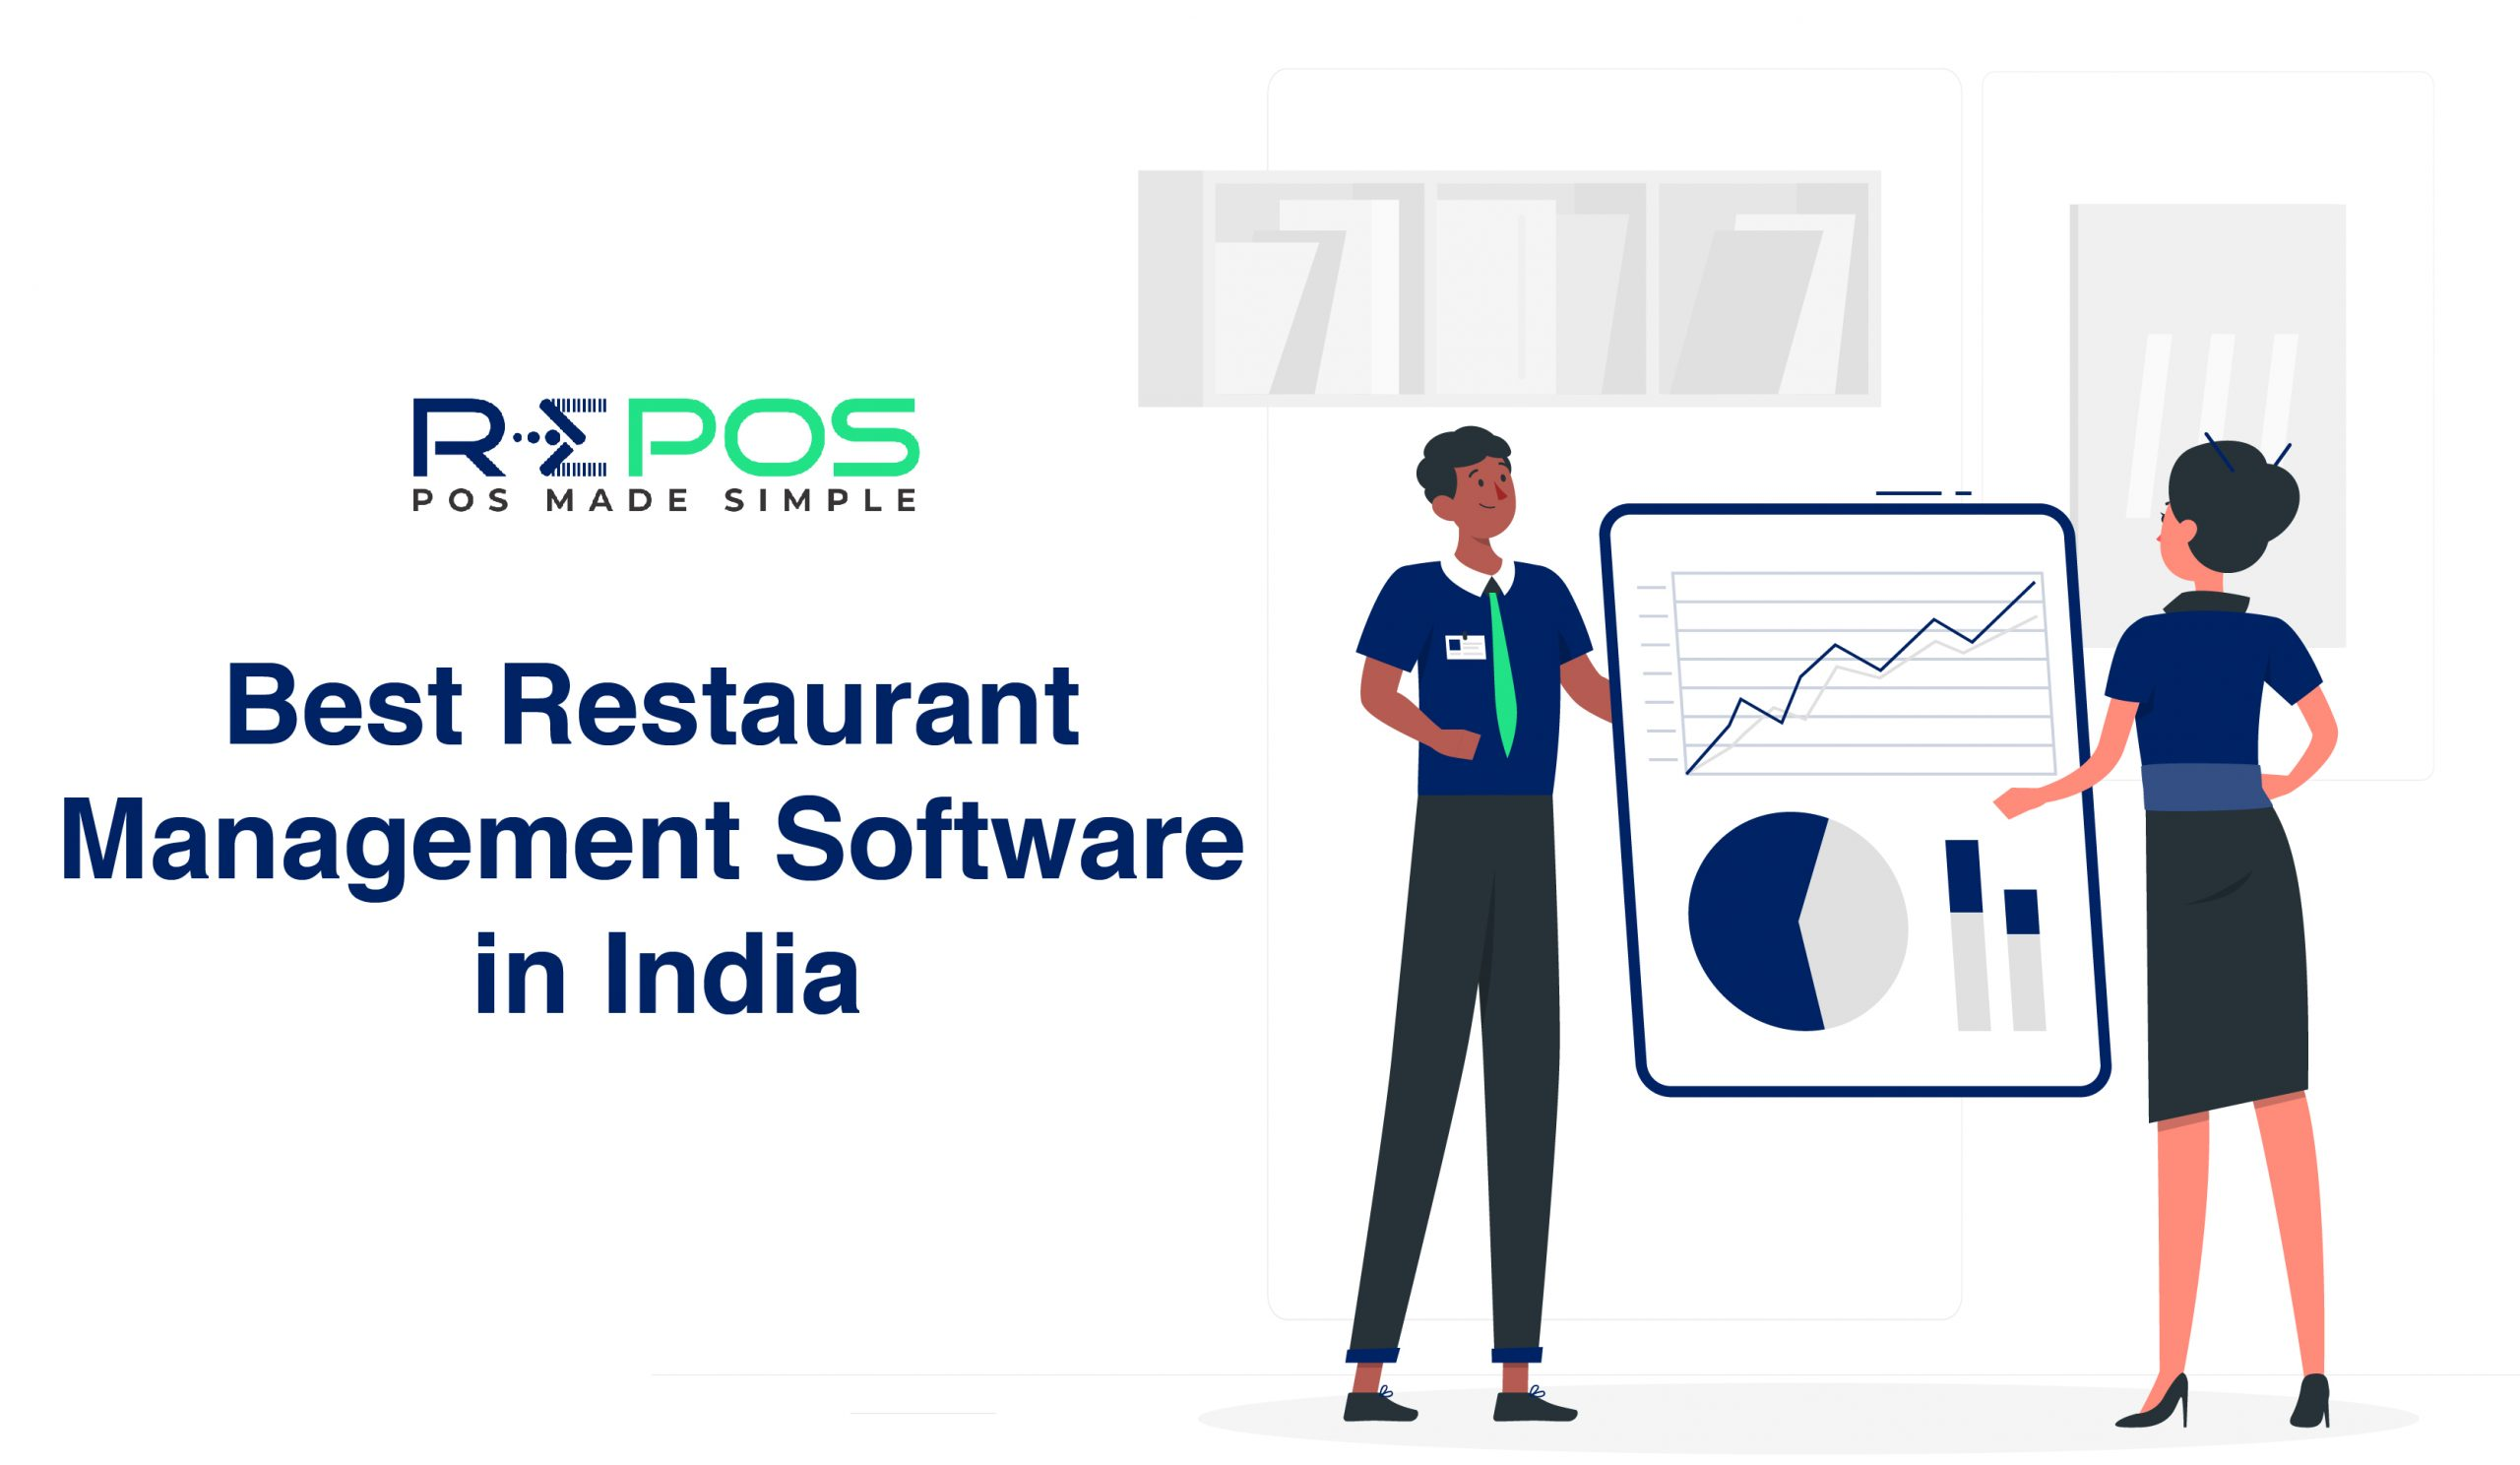 RePOS No.1 Best Restaurant Management Software in India